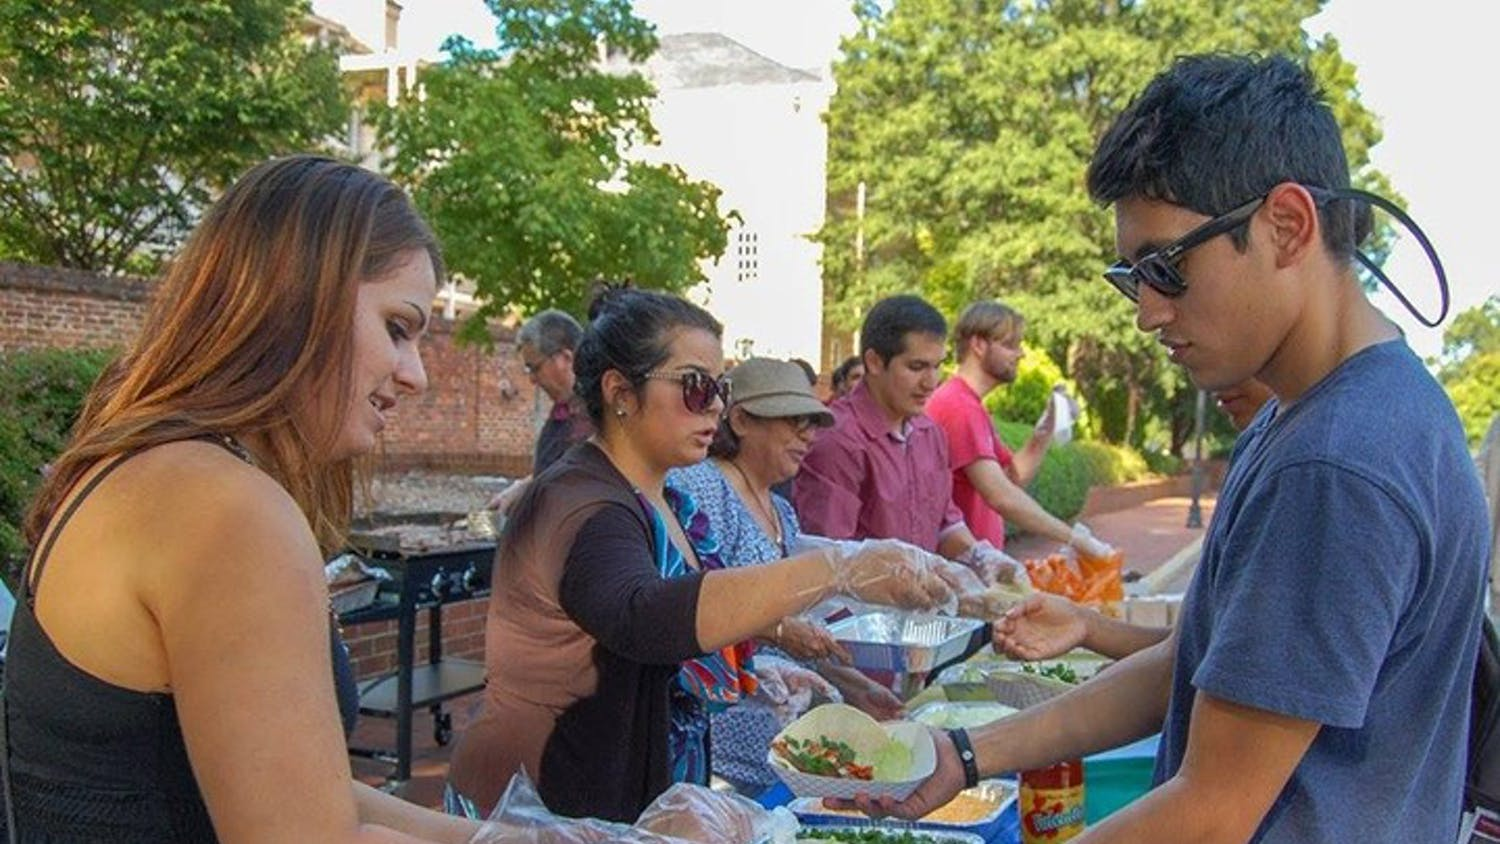 LASO, the Latin American Student Organization at USC, provides students of all backgrounds with creative leadership and access to Latin American culture.